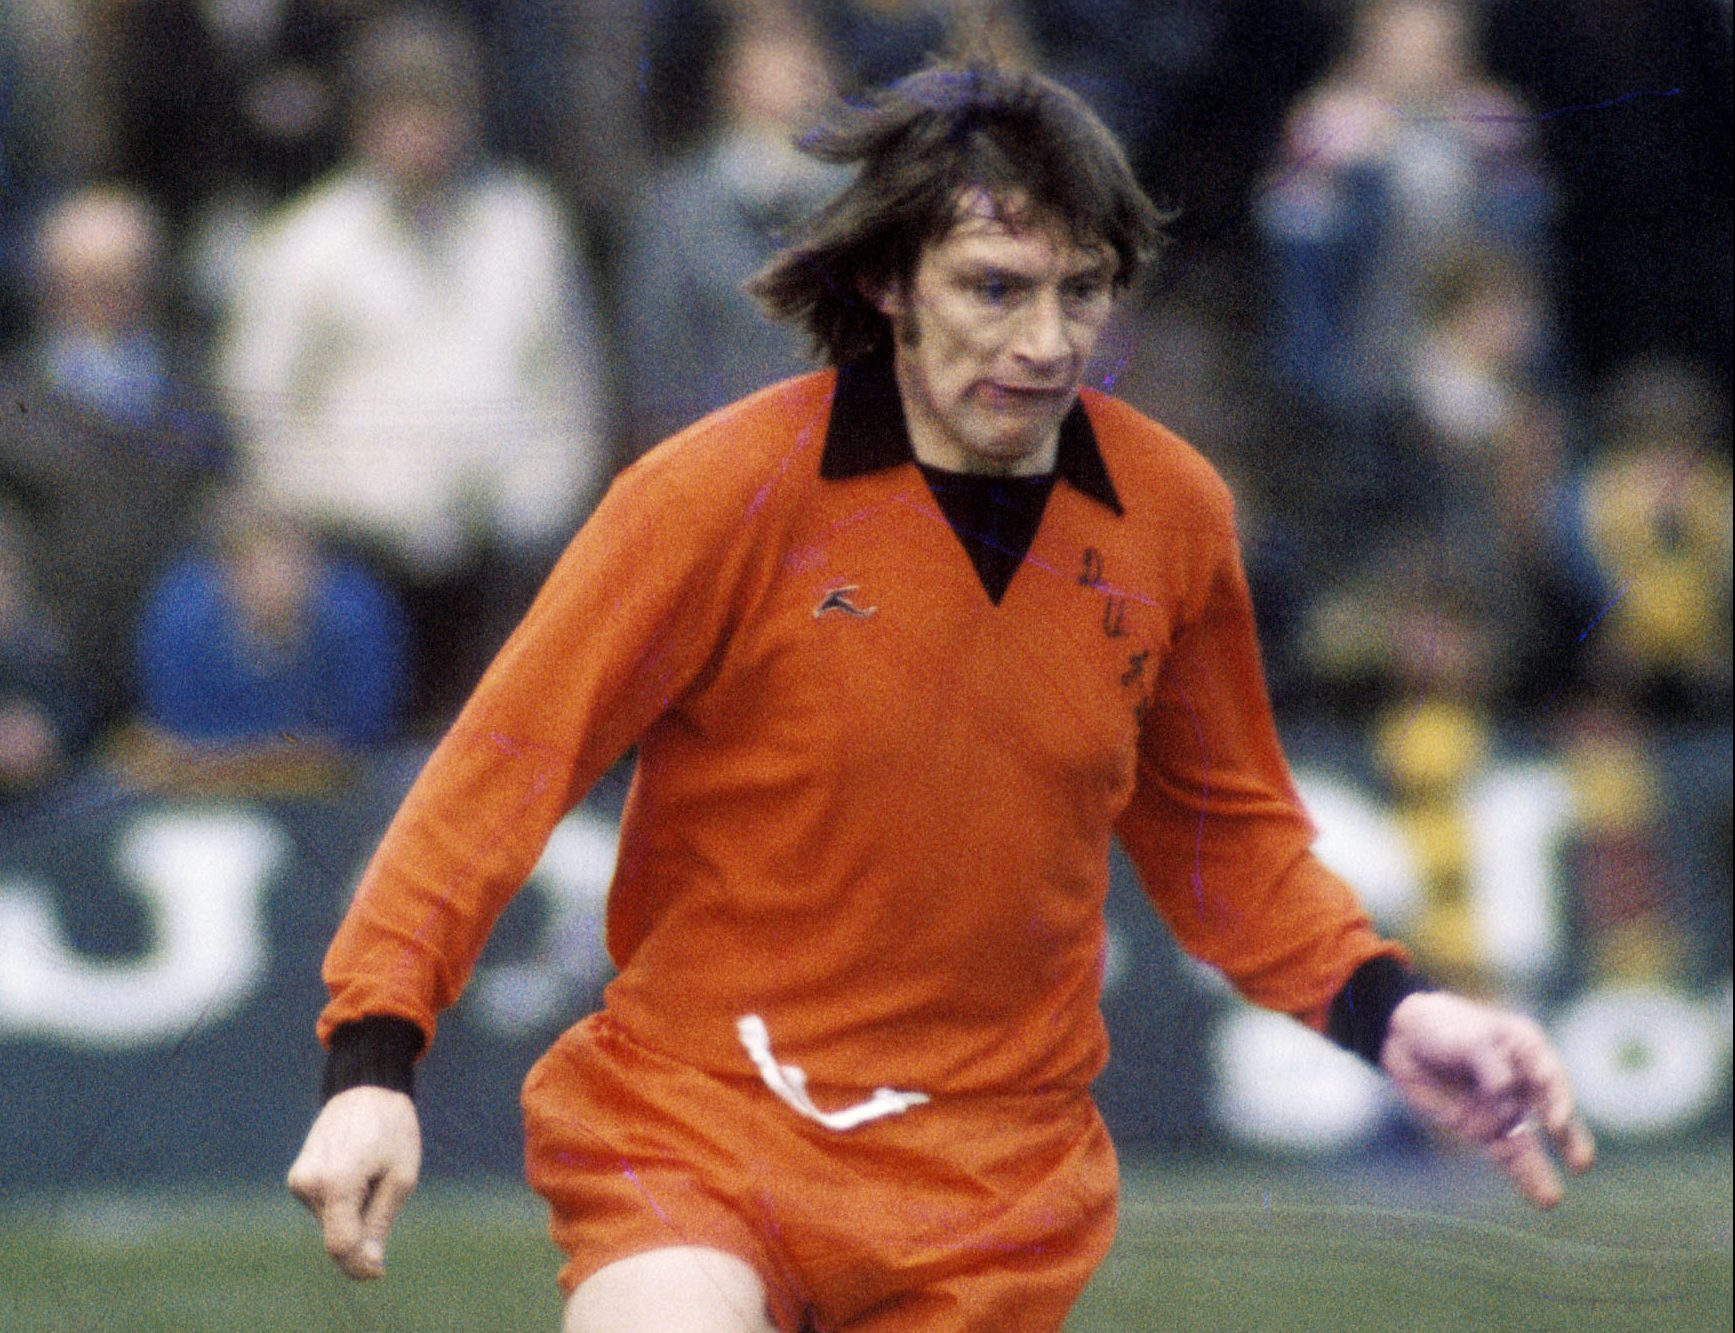 Dundee United's Andy Rolland